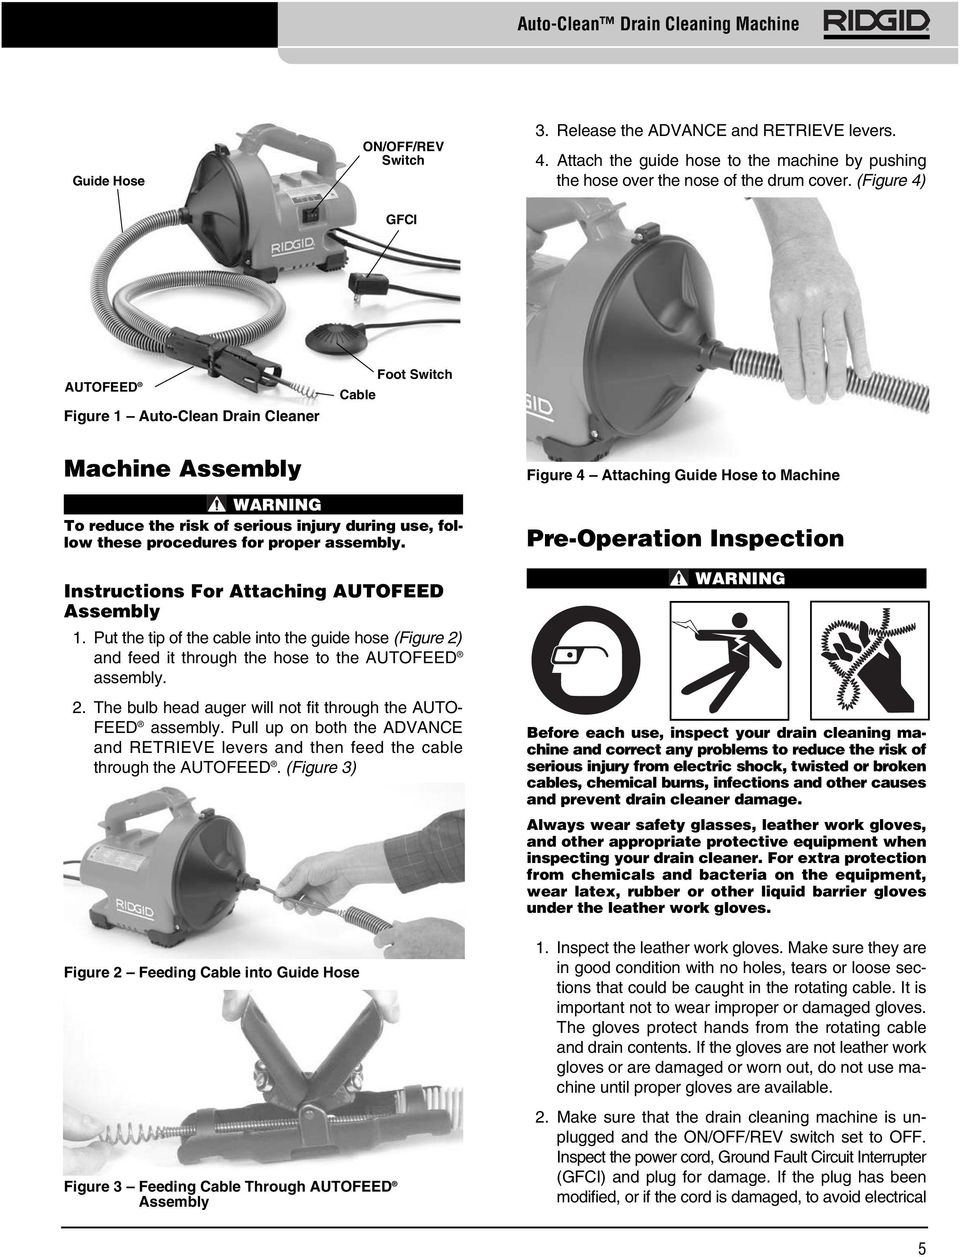 Instructions For Attaching AUTOFEED Assembly 1. Put the tip of the cable into the guide hose (Figure 2) and feed it through the hose to the AUTOFEED assembly. 2. The bulb head auger will not fit through the AUTO- FEED assembly.